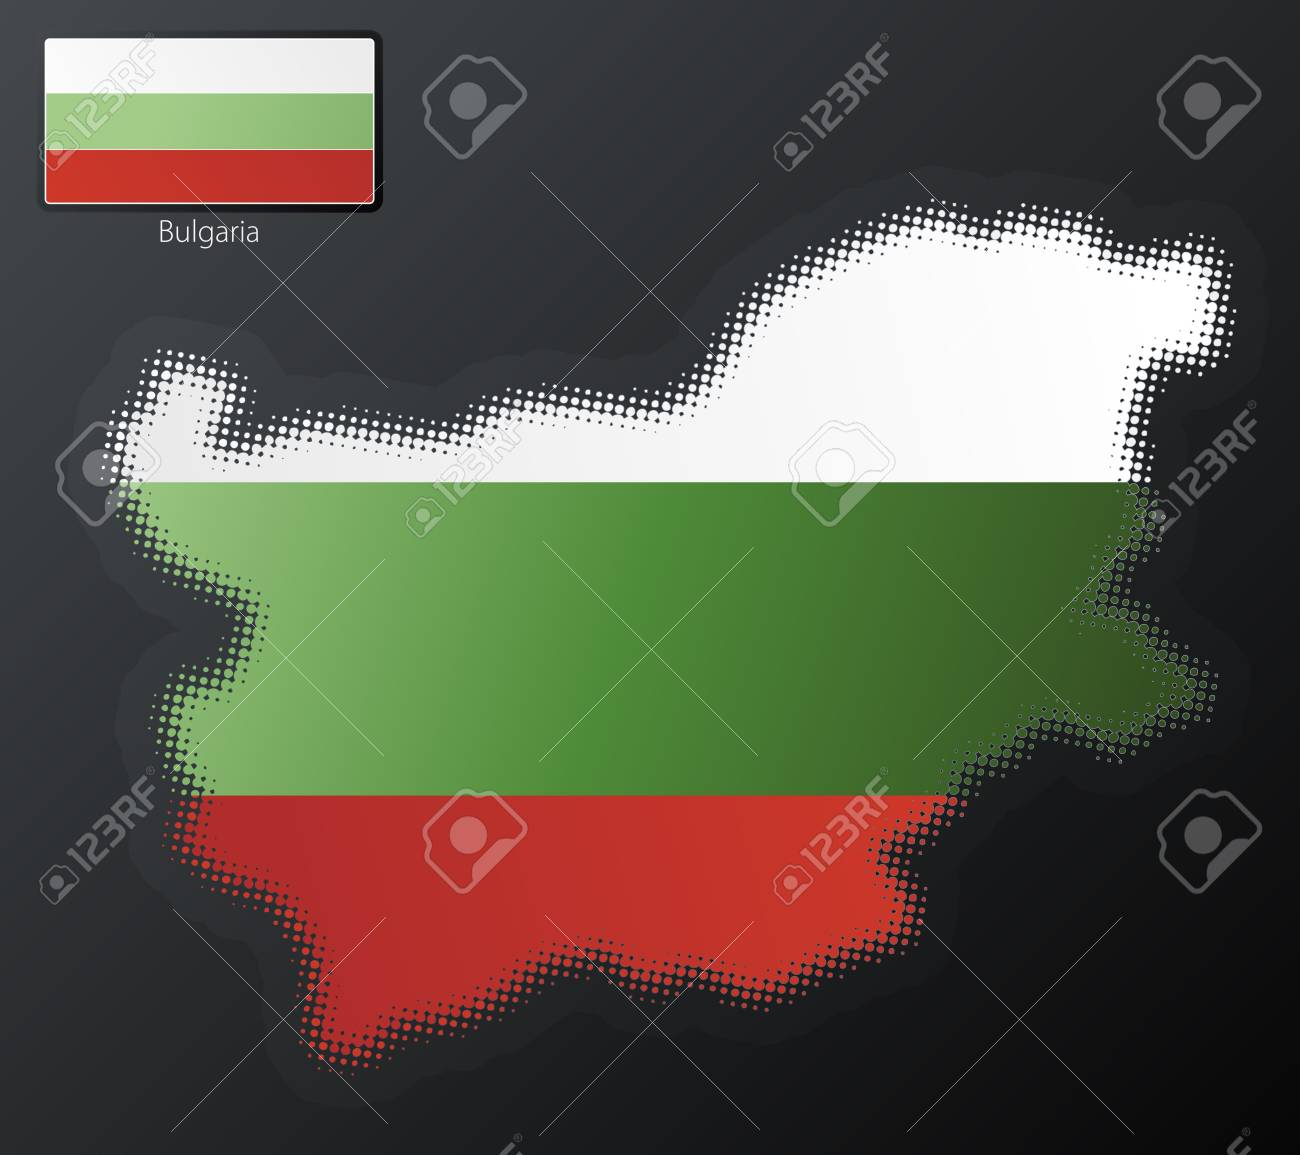 Vector illustration of a modern halftone design element in the shape of Bulgaria, European Union. Second halftone, border and contents, on separate layer. Additional flag included. Stock Photo - 3939826